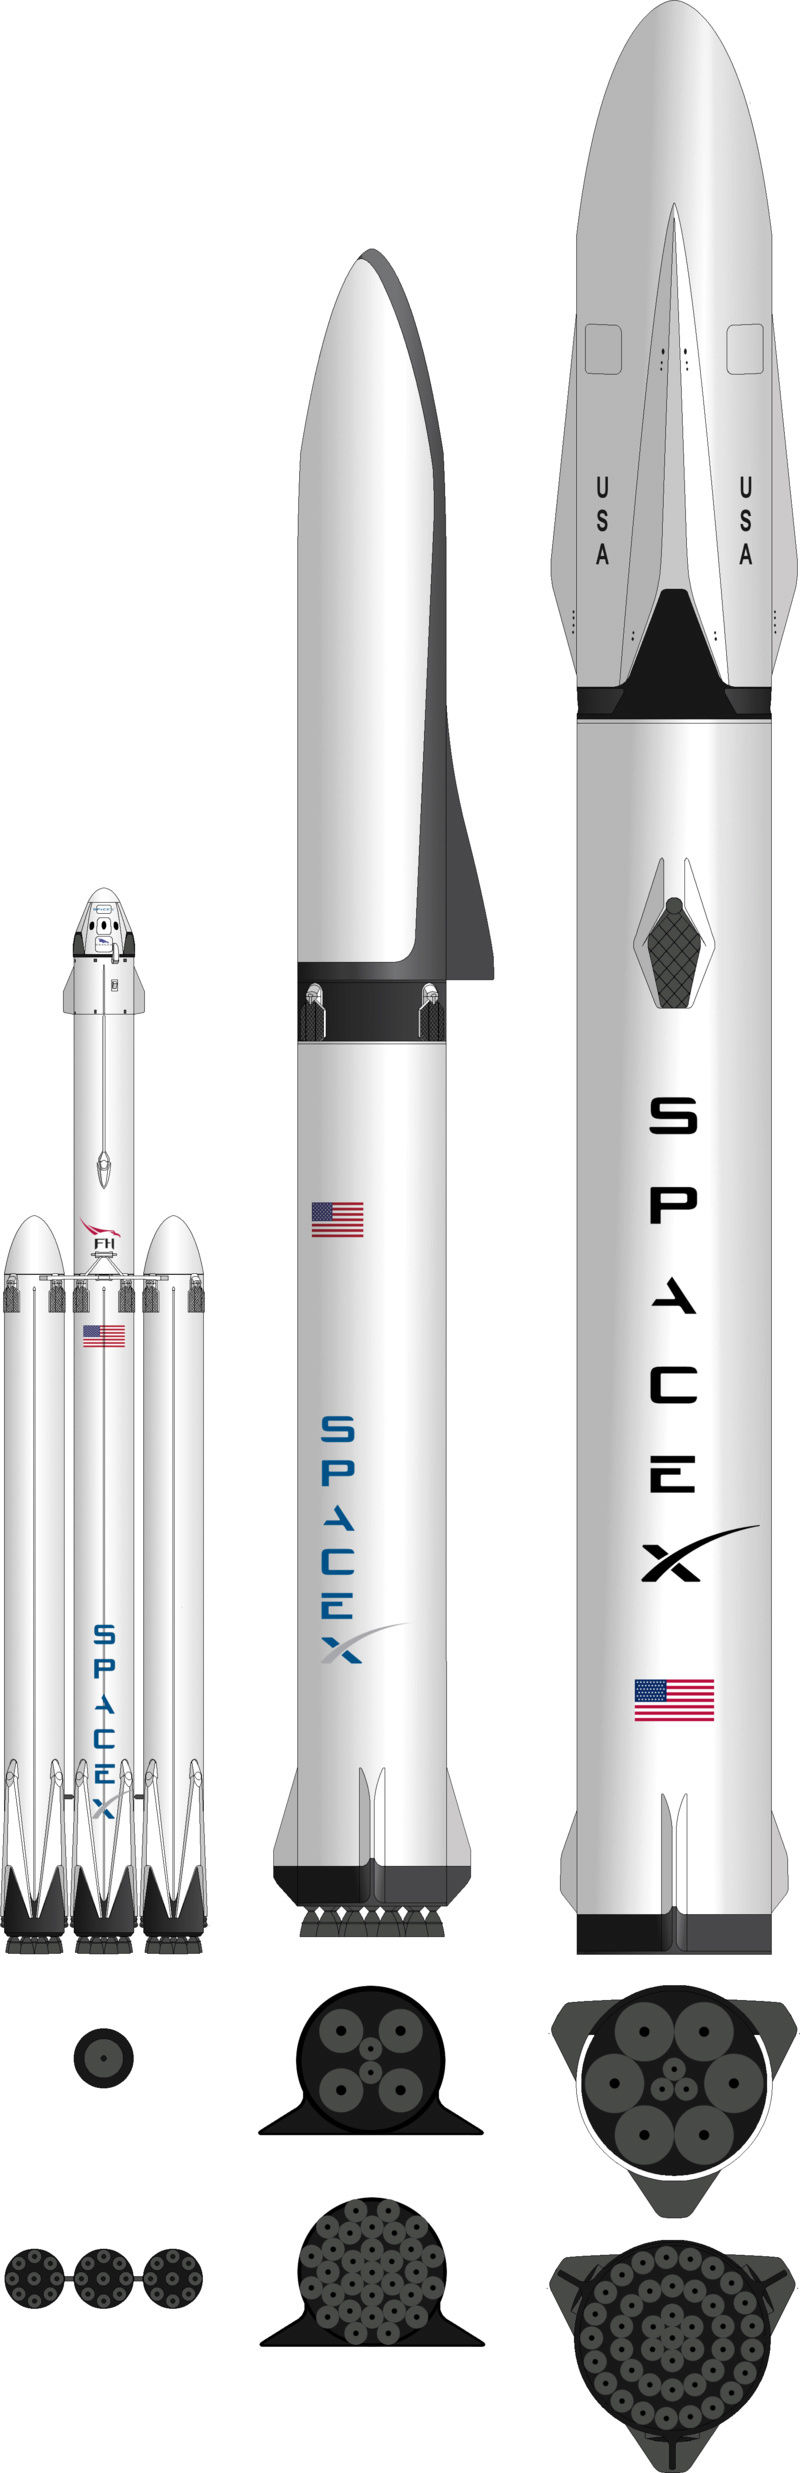 space x ITS Bfr10